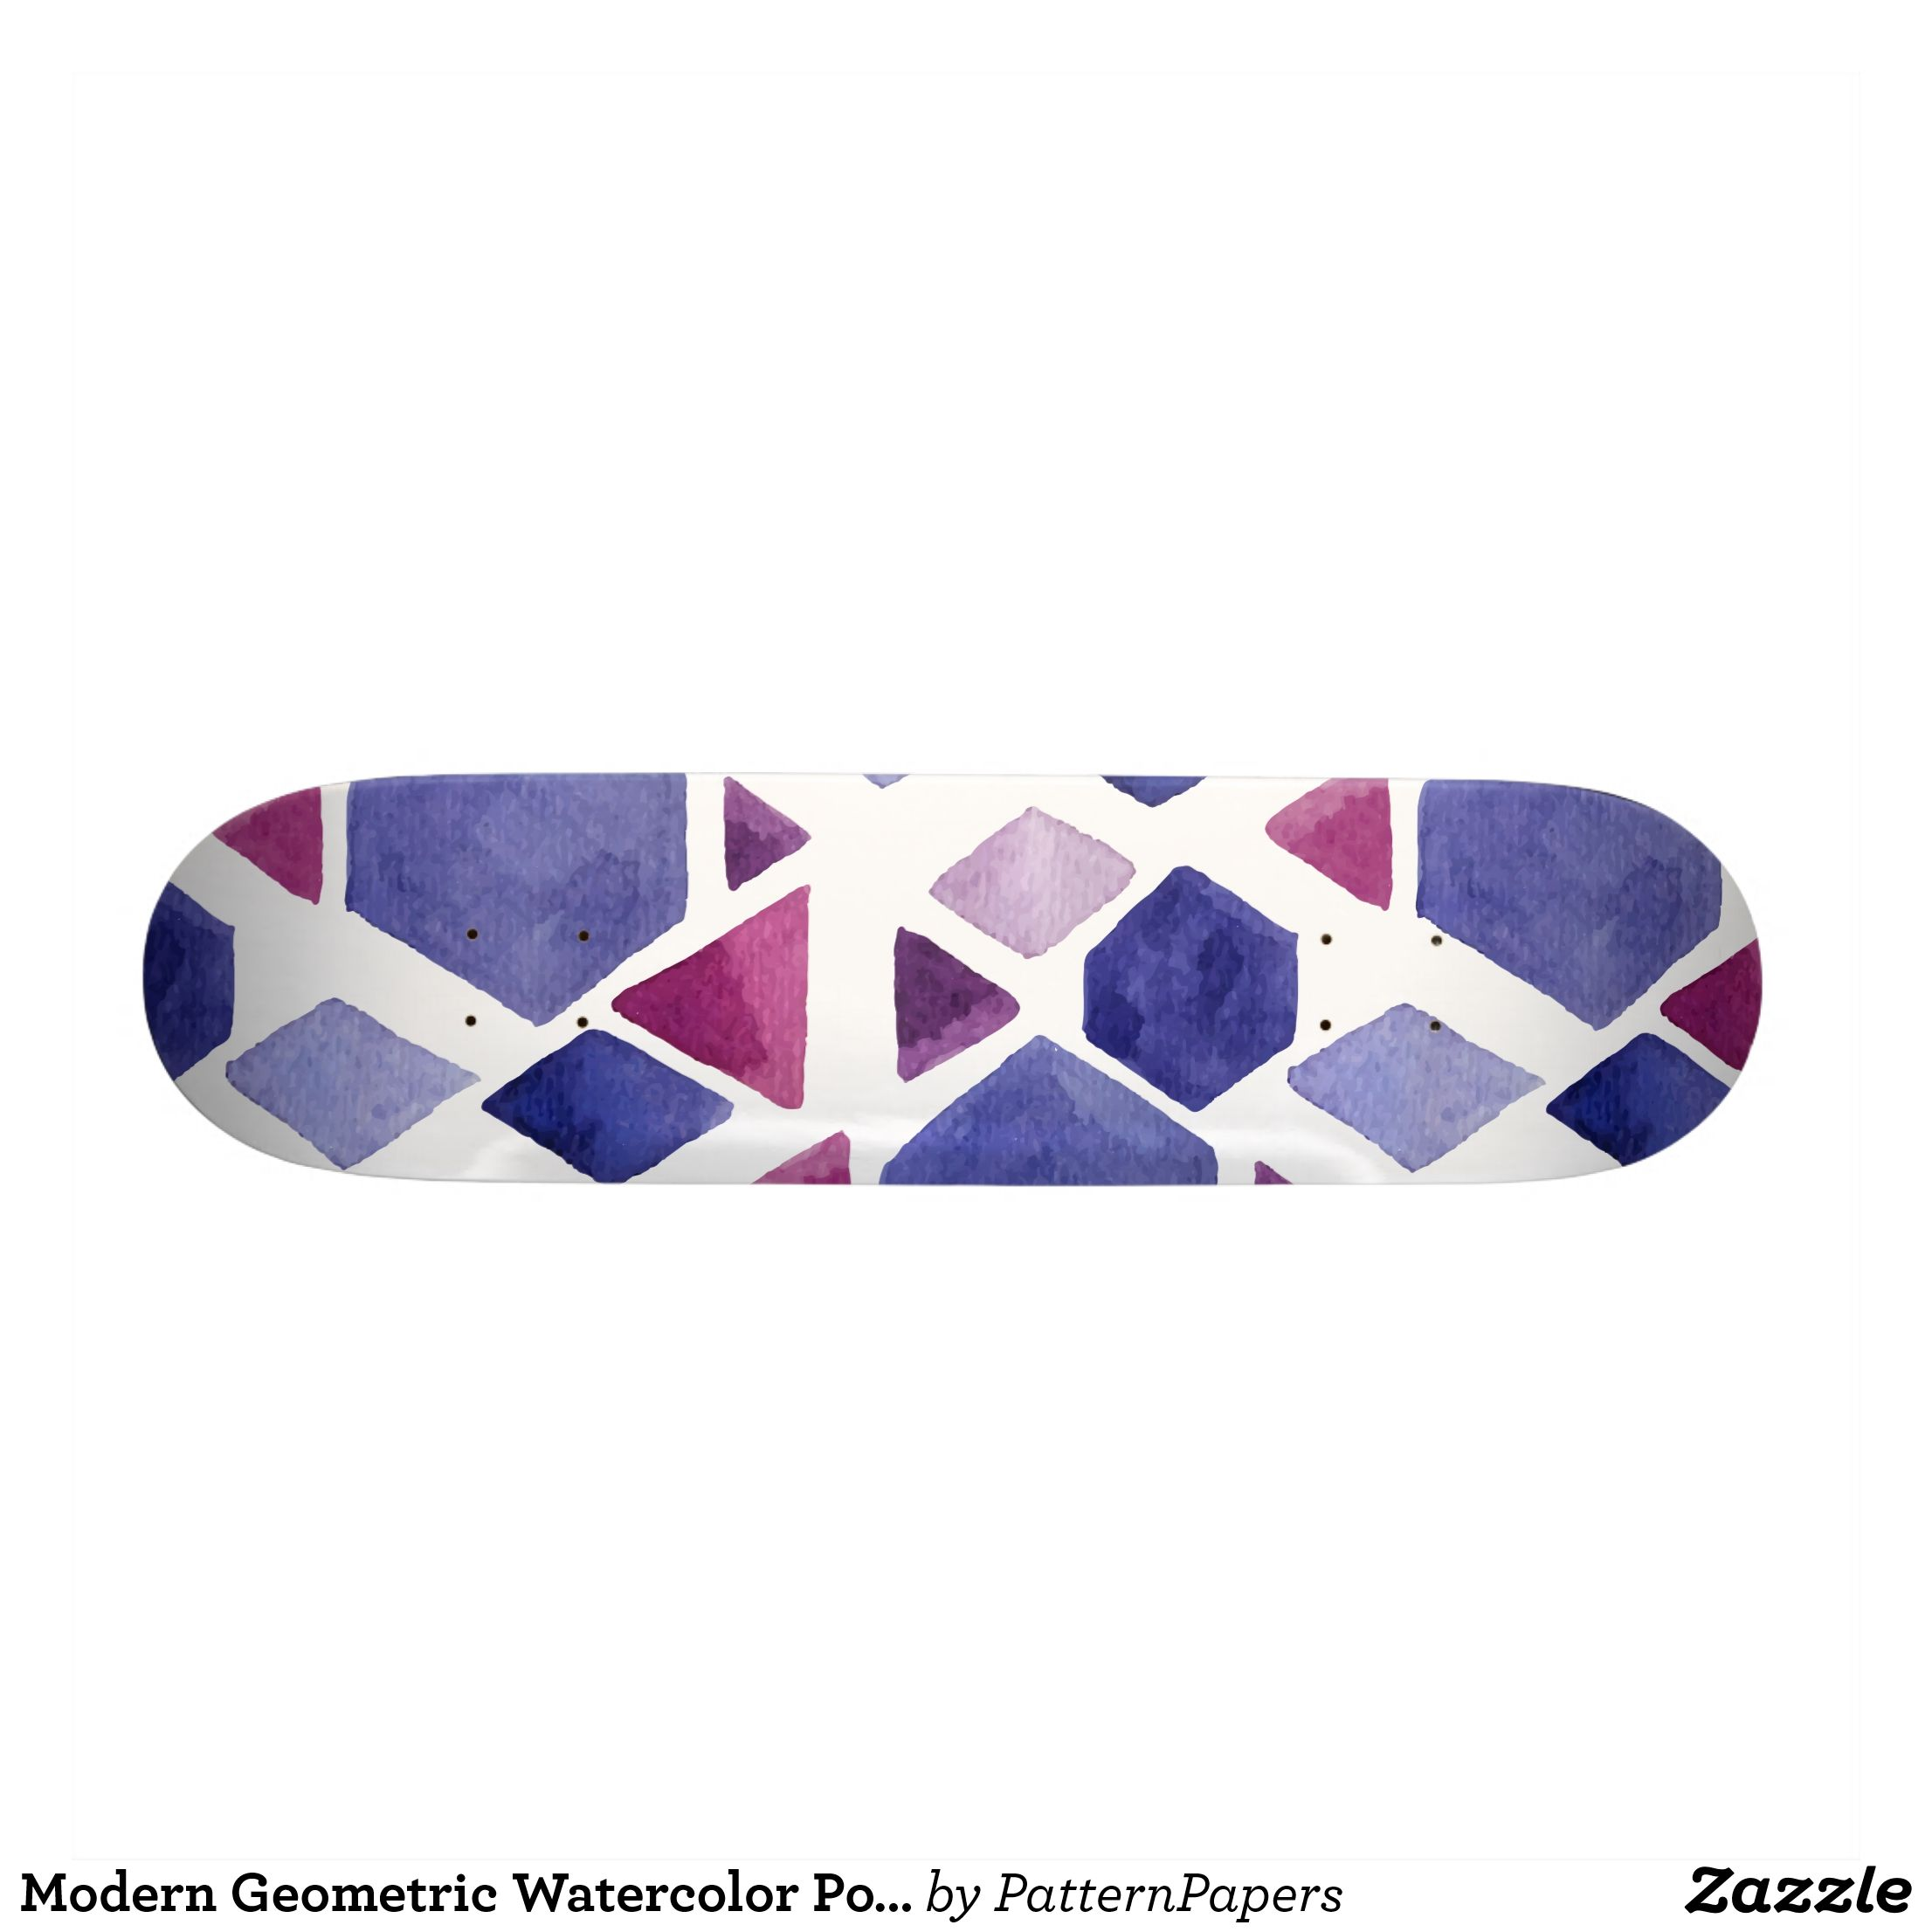 Modern Geometric Watercolor Polygon Pattern Skateboard Deck Supreme Hard Rock Maple Deck Custom Boards By Ta Polygon Pattern Fashion Graphic Skateboard Decks